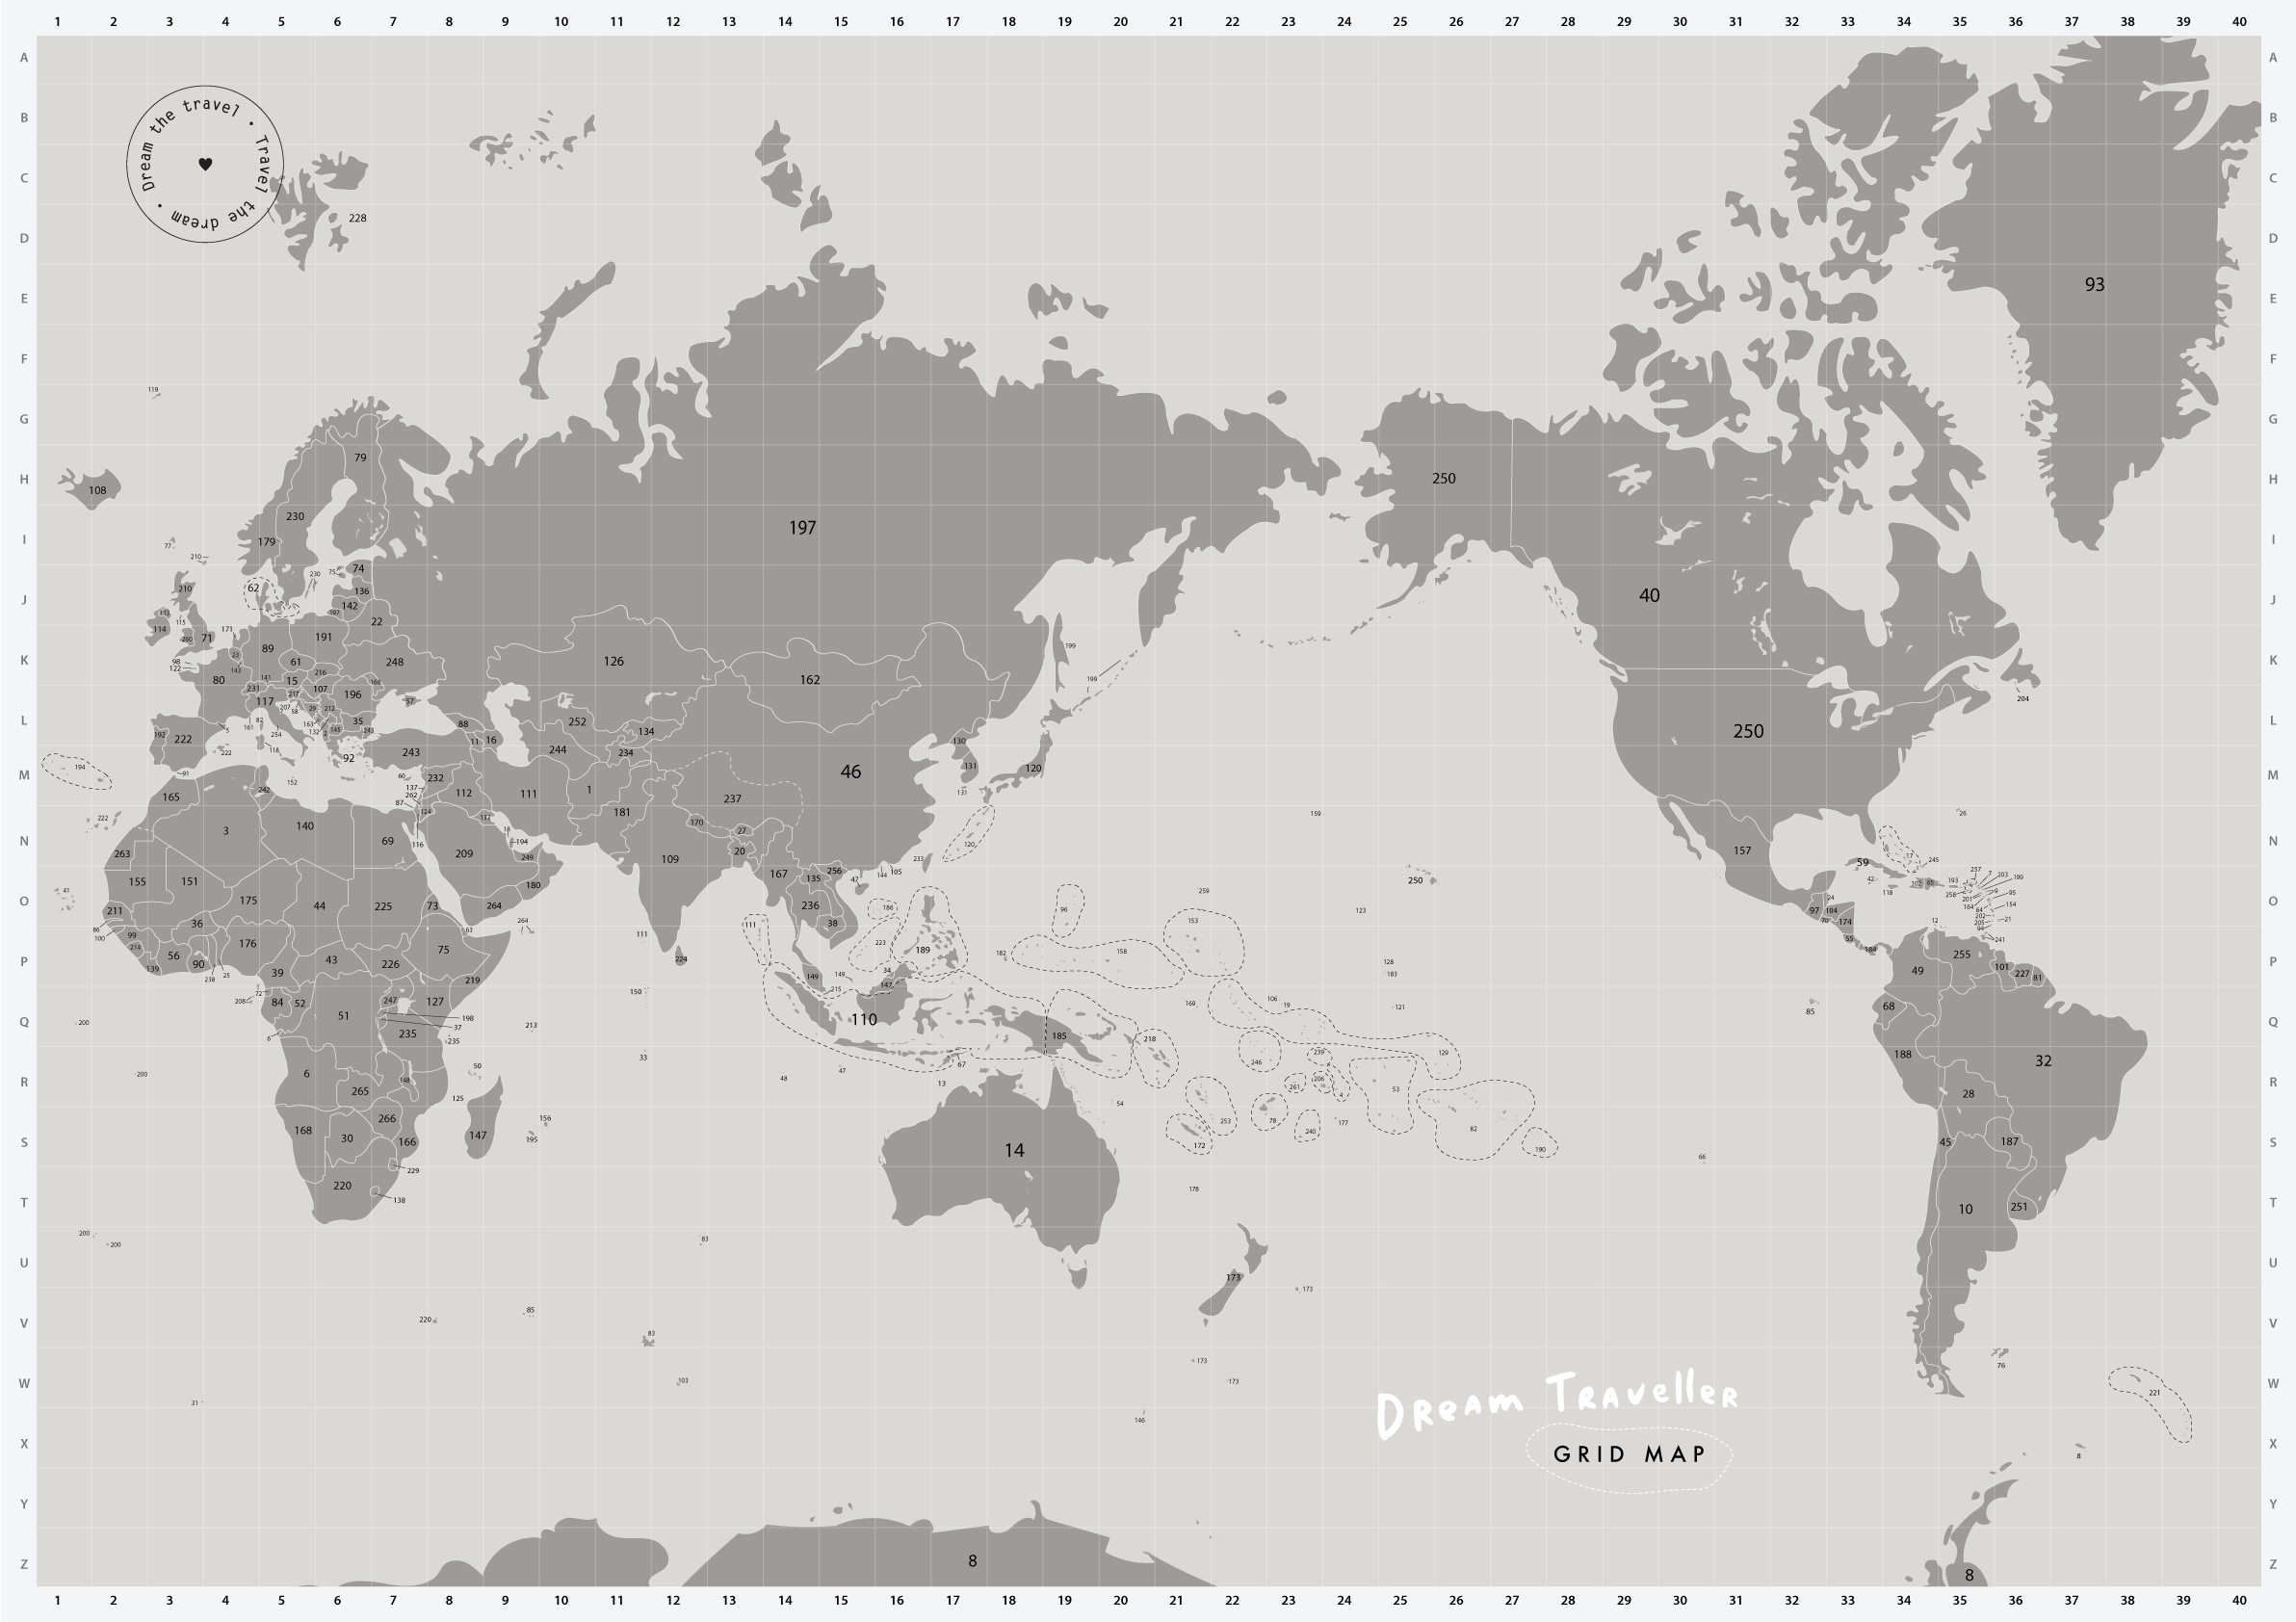 A1-DT-World-Map-GRID-BW.png